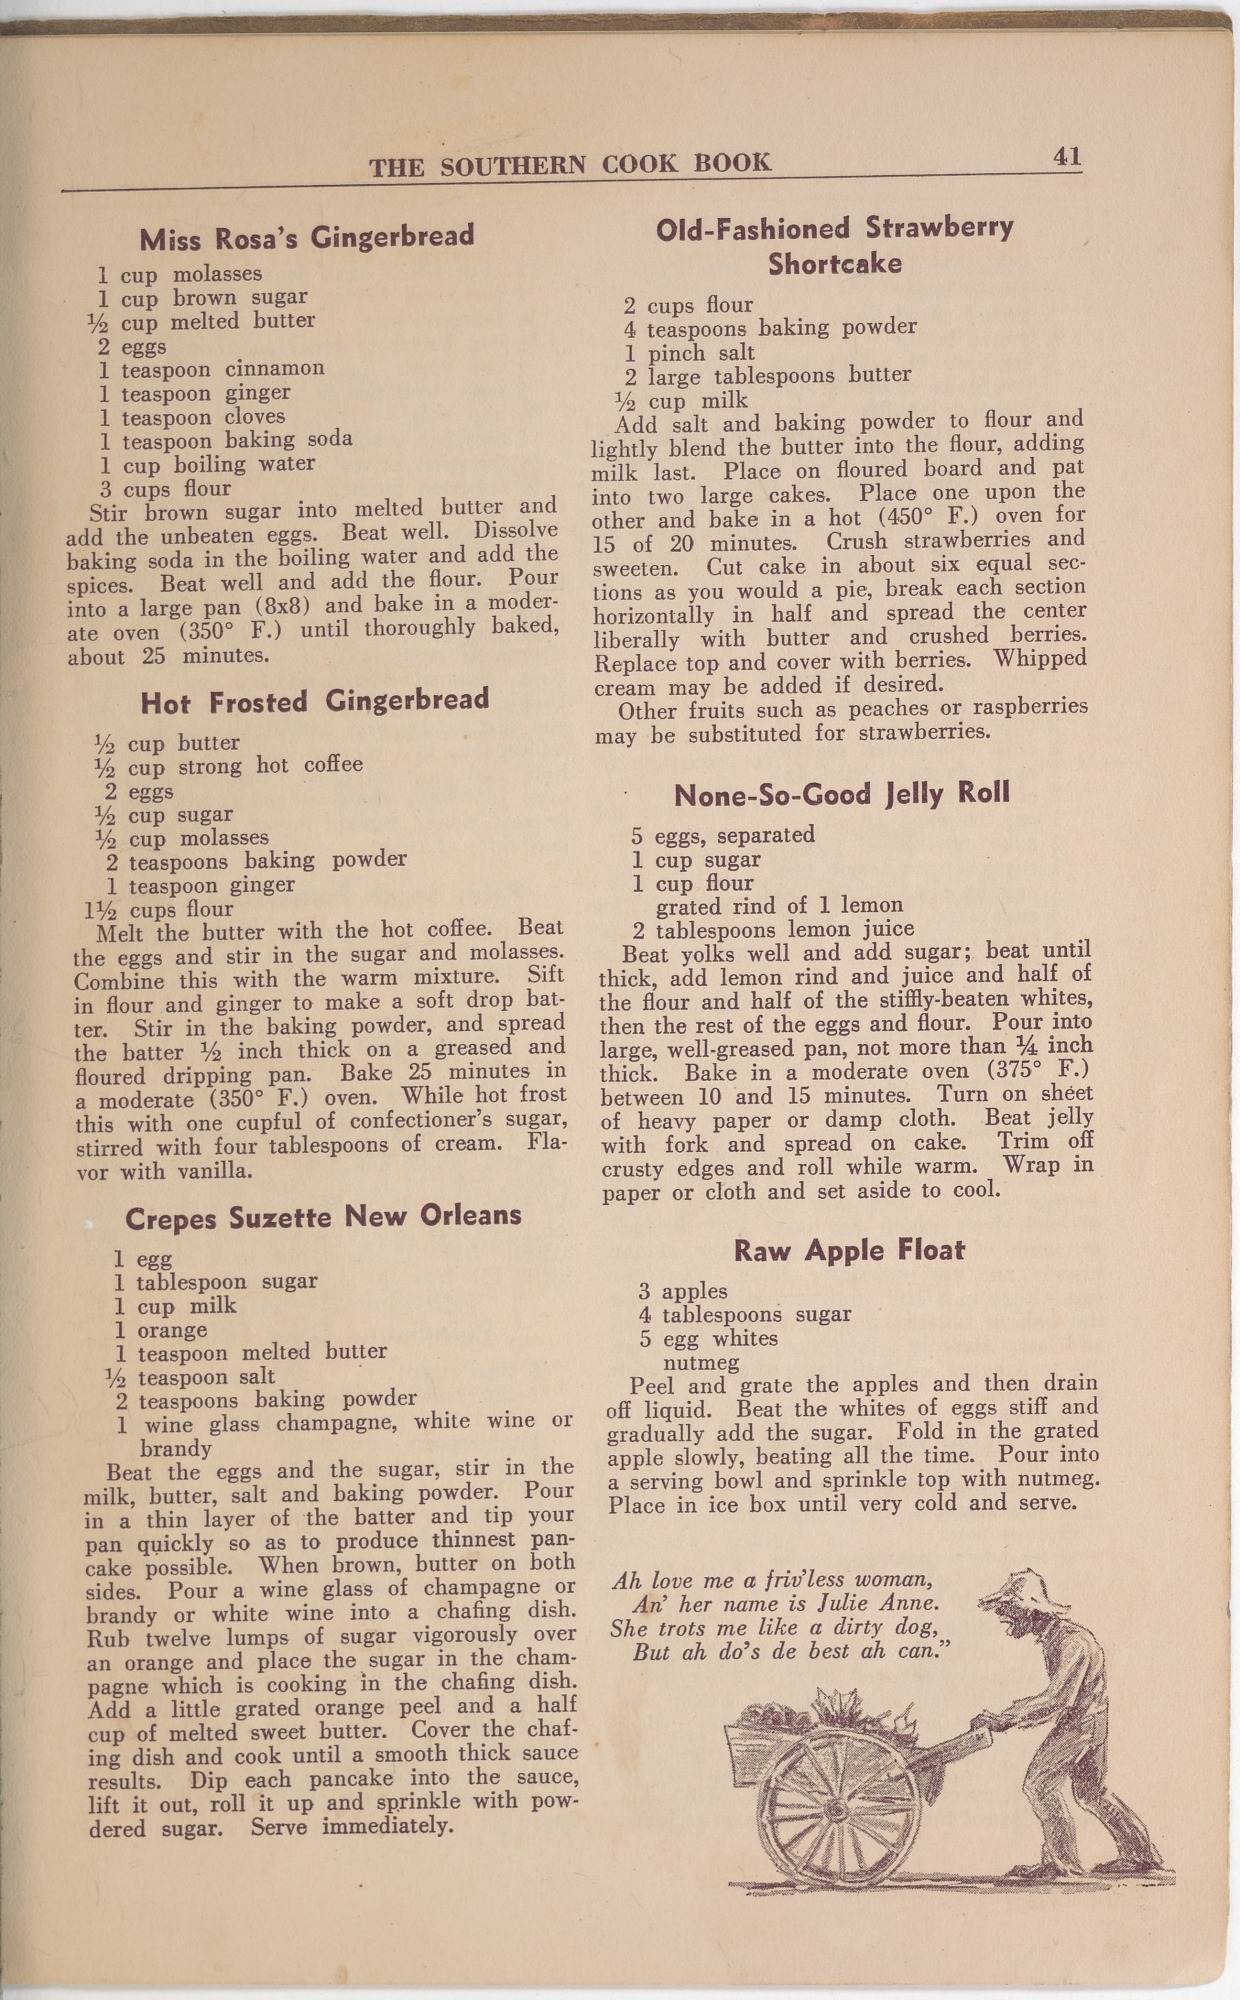 View <I>Southern Cook Book of Fine Old Dixie Recipes</I> digital asset number 43